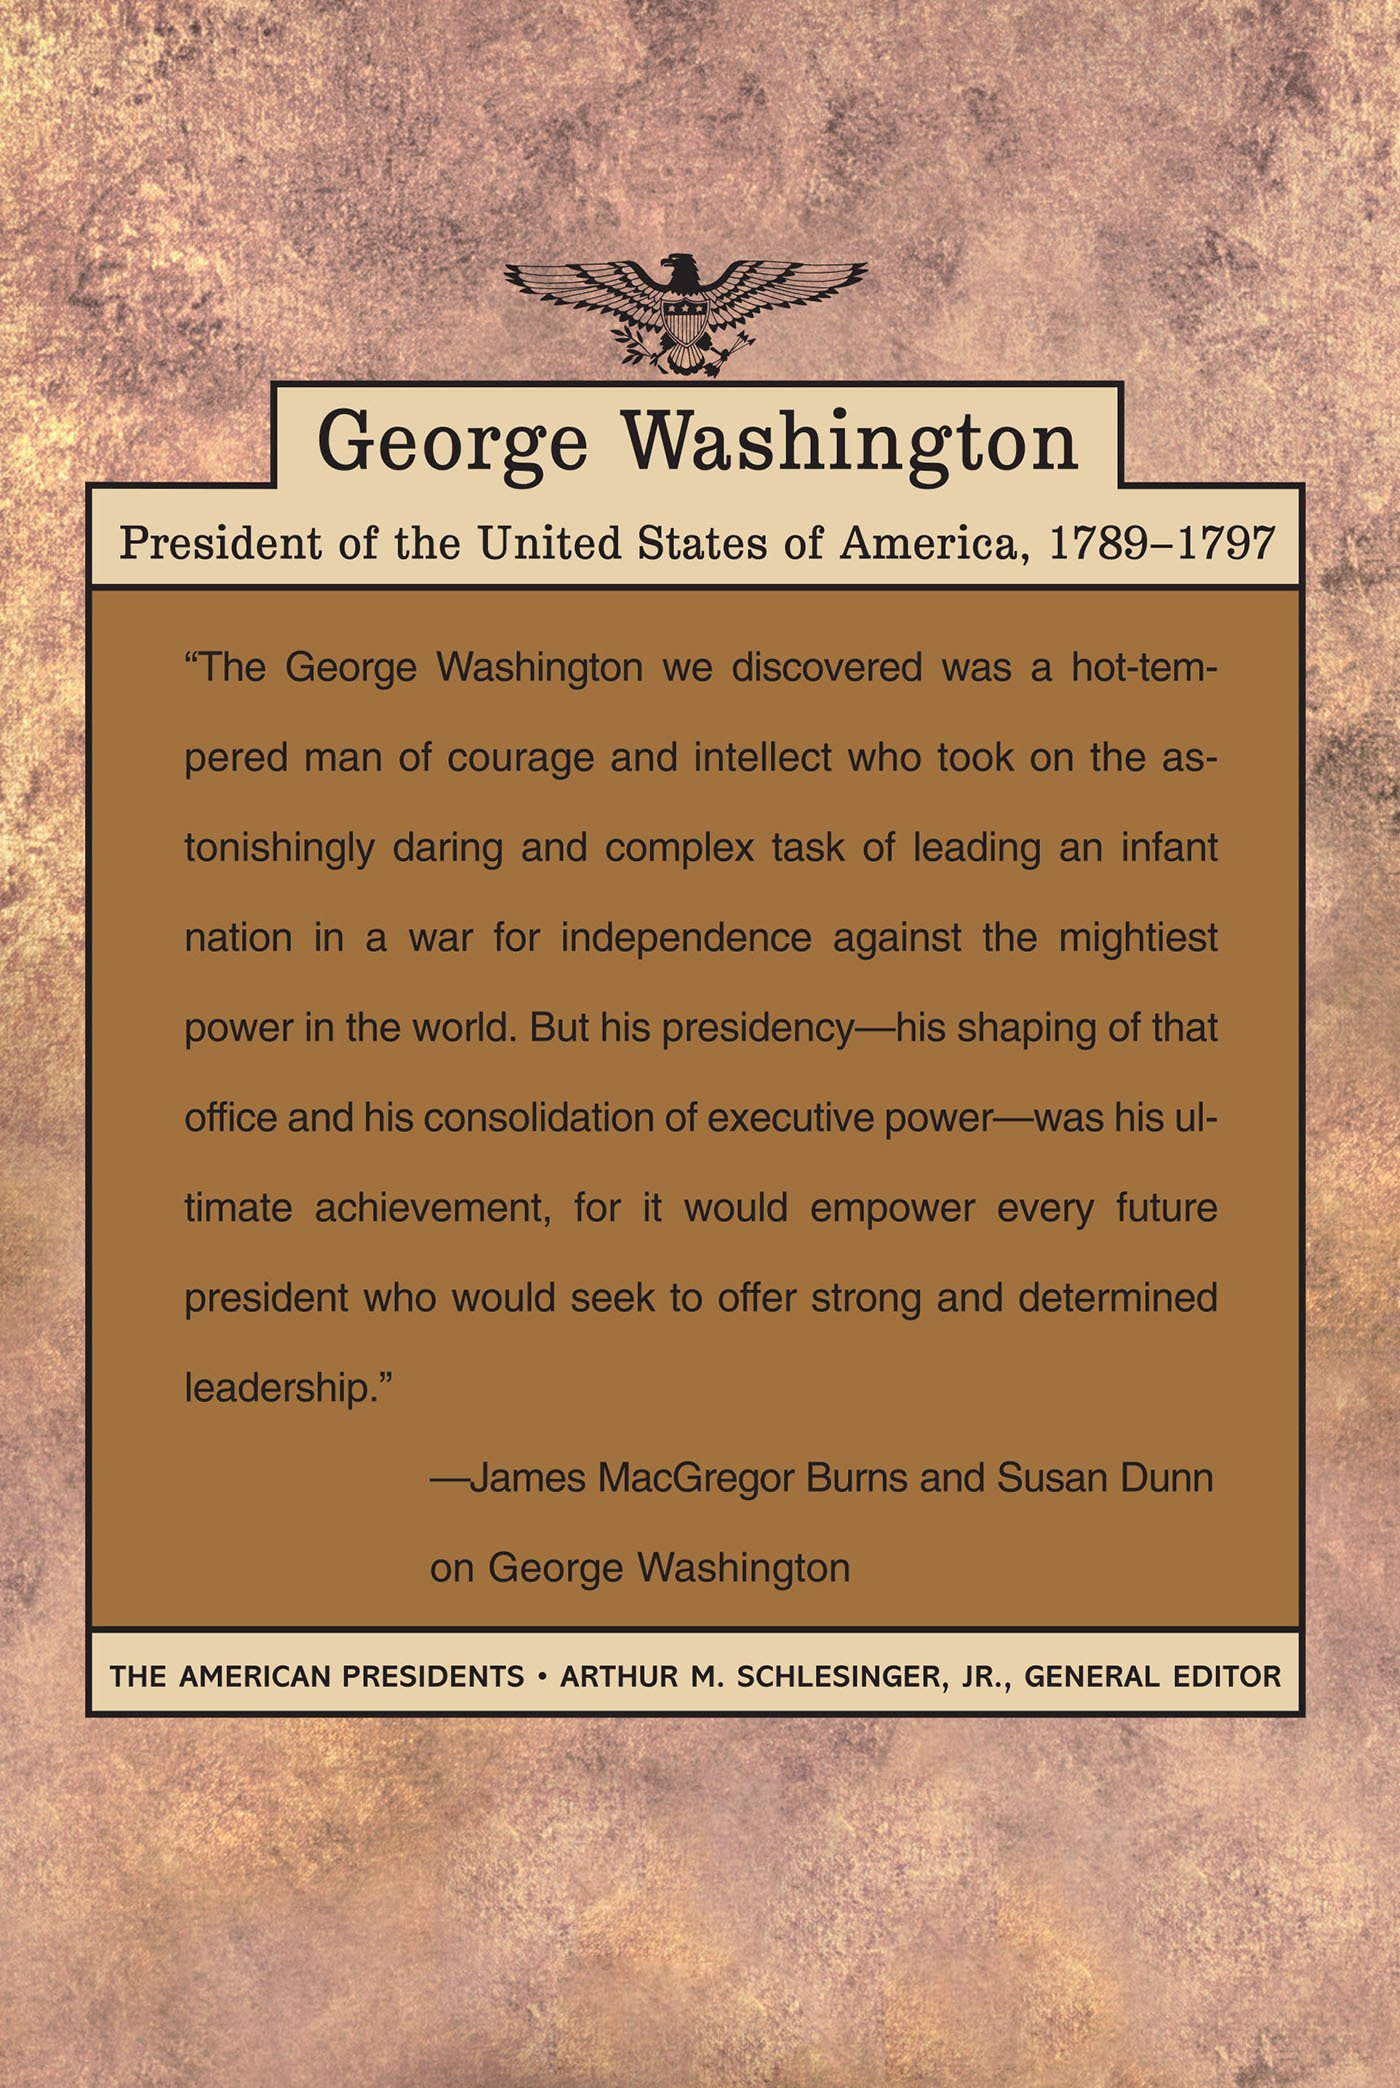 com george washington the american presidents series com george washington the american presidents series 9780805069365 james macgregor burns susan dunn arthur m schlesinger jr books